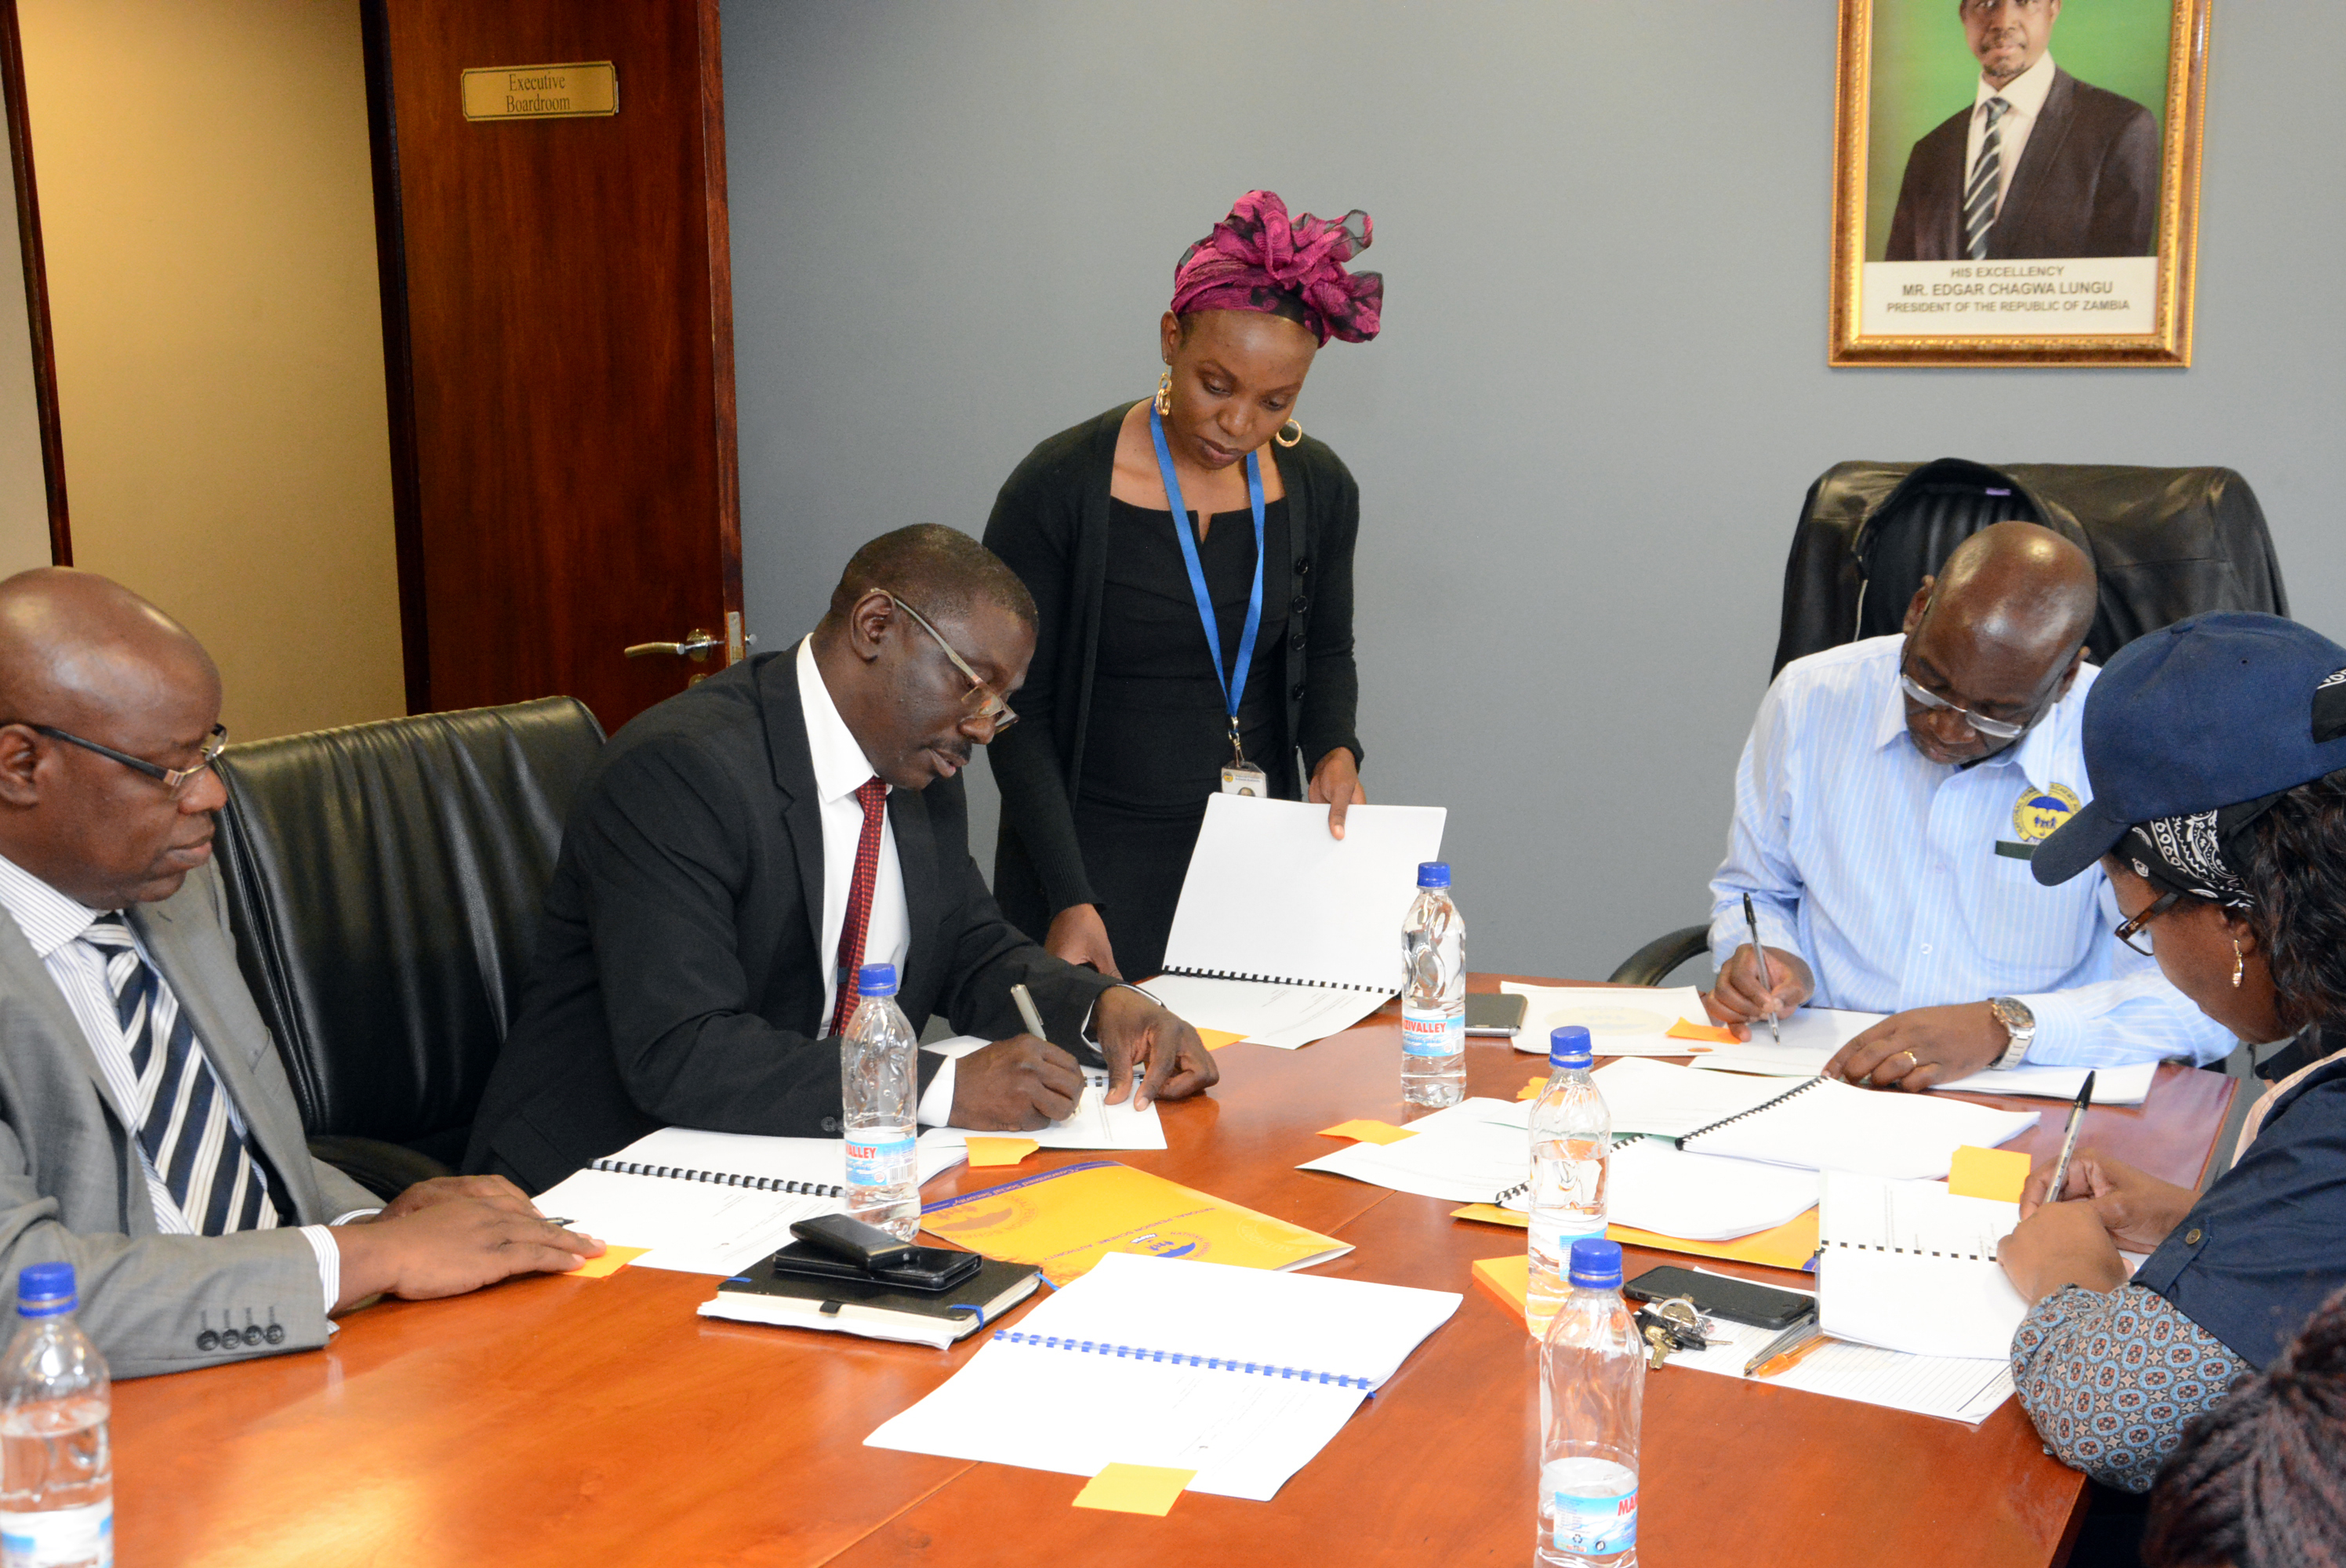 NAPSA Funds the NRFA for the rehabilitation of roads and construction of toll gates on Copperbelt/North Western routes.